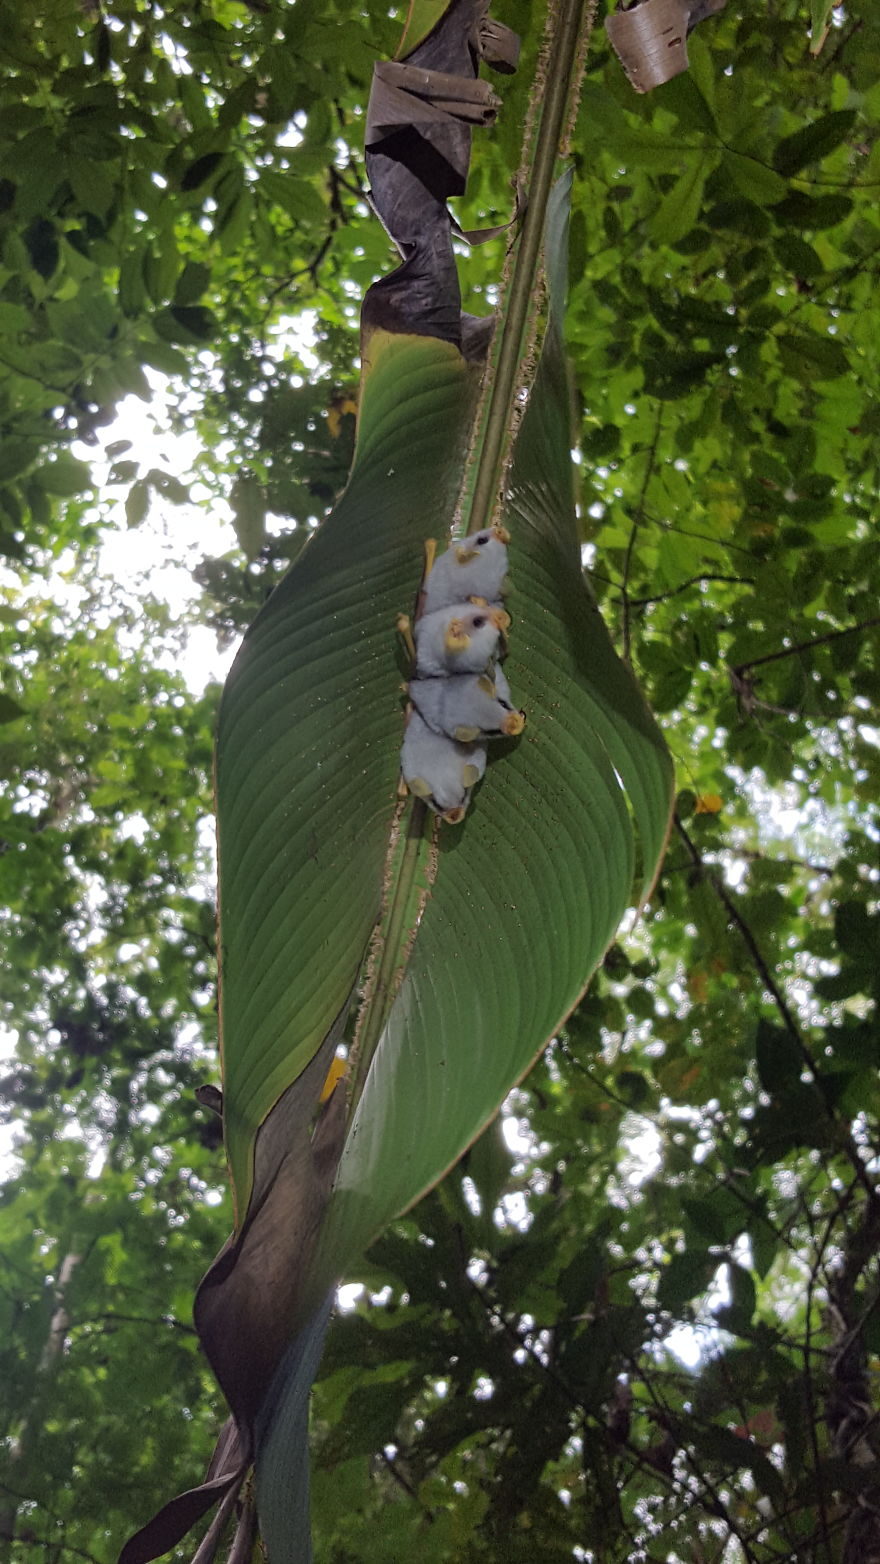 I Traveled To The Costa Rican Rainforest And Photographed Honduran White Bats (5 Pics)